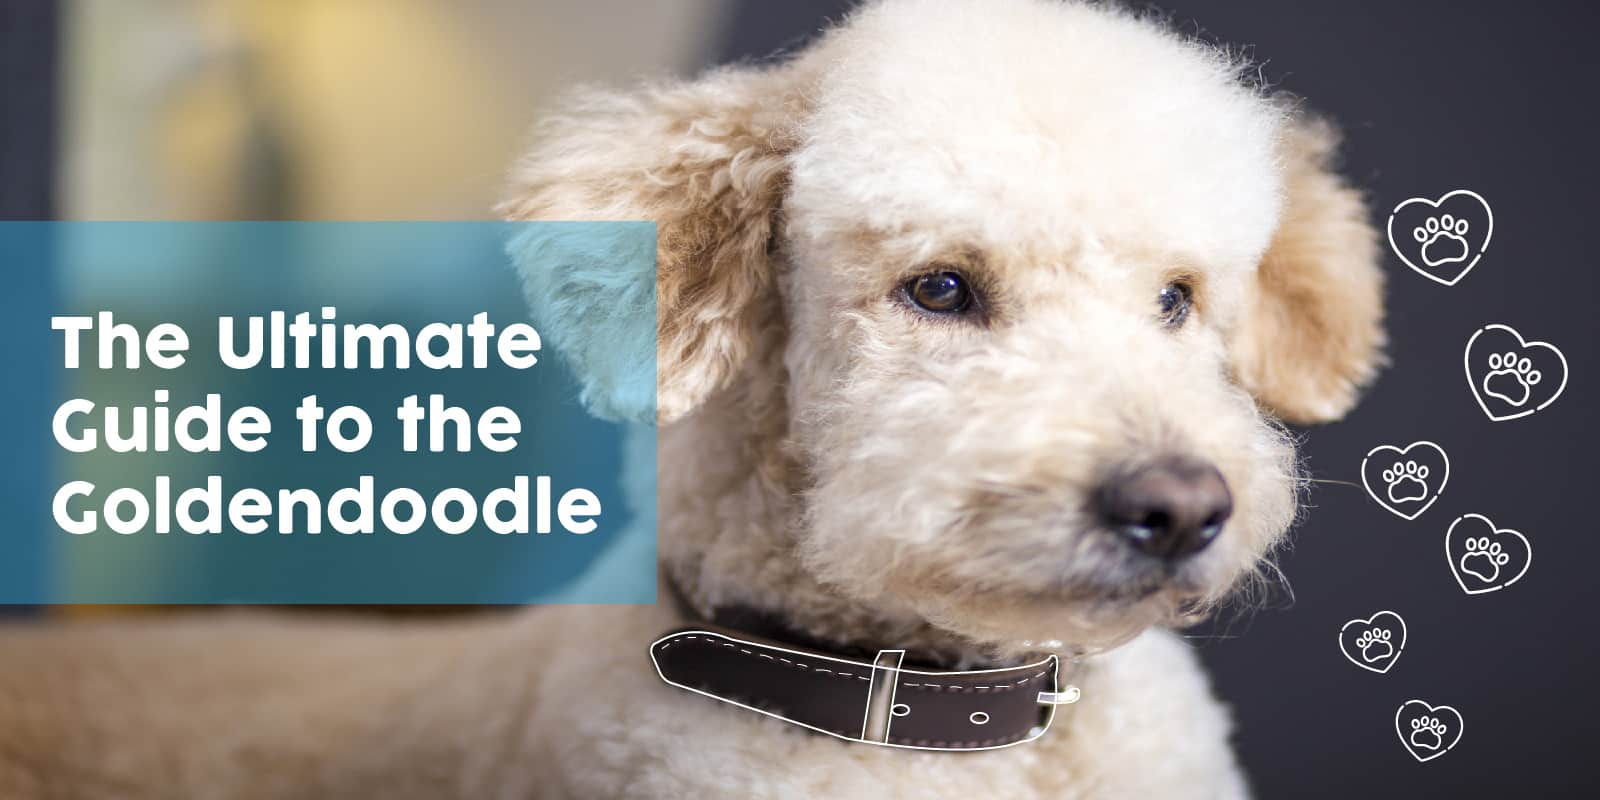 The Ultimate Guide to the Goldendoodle